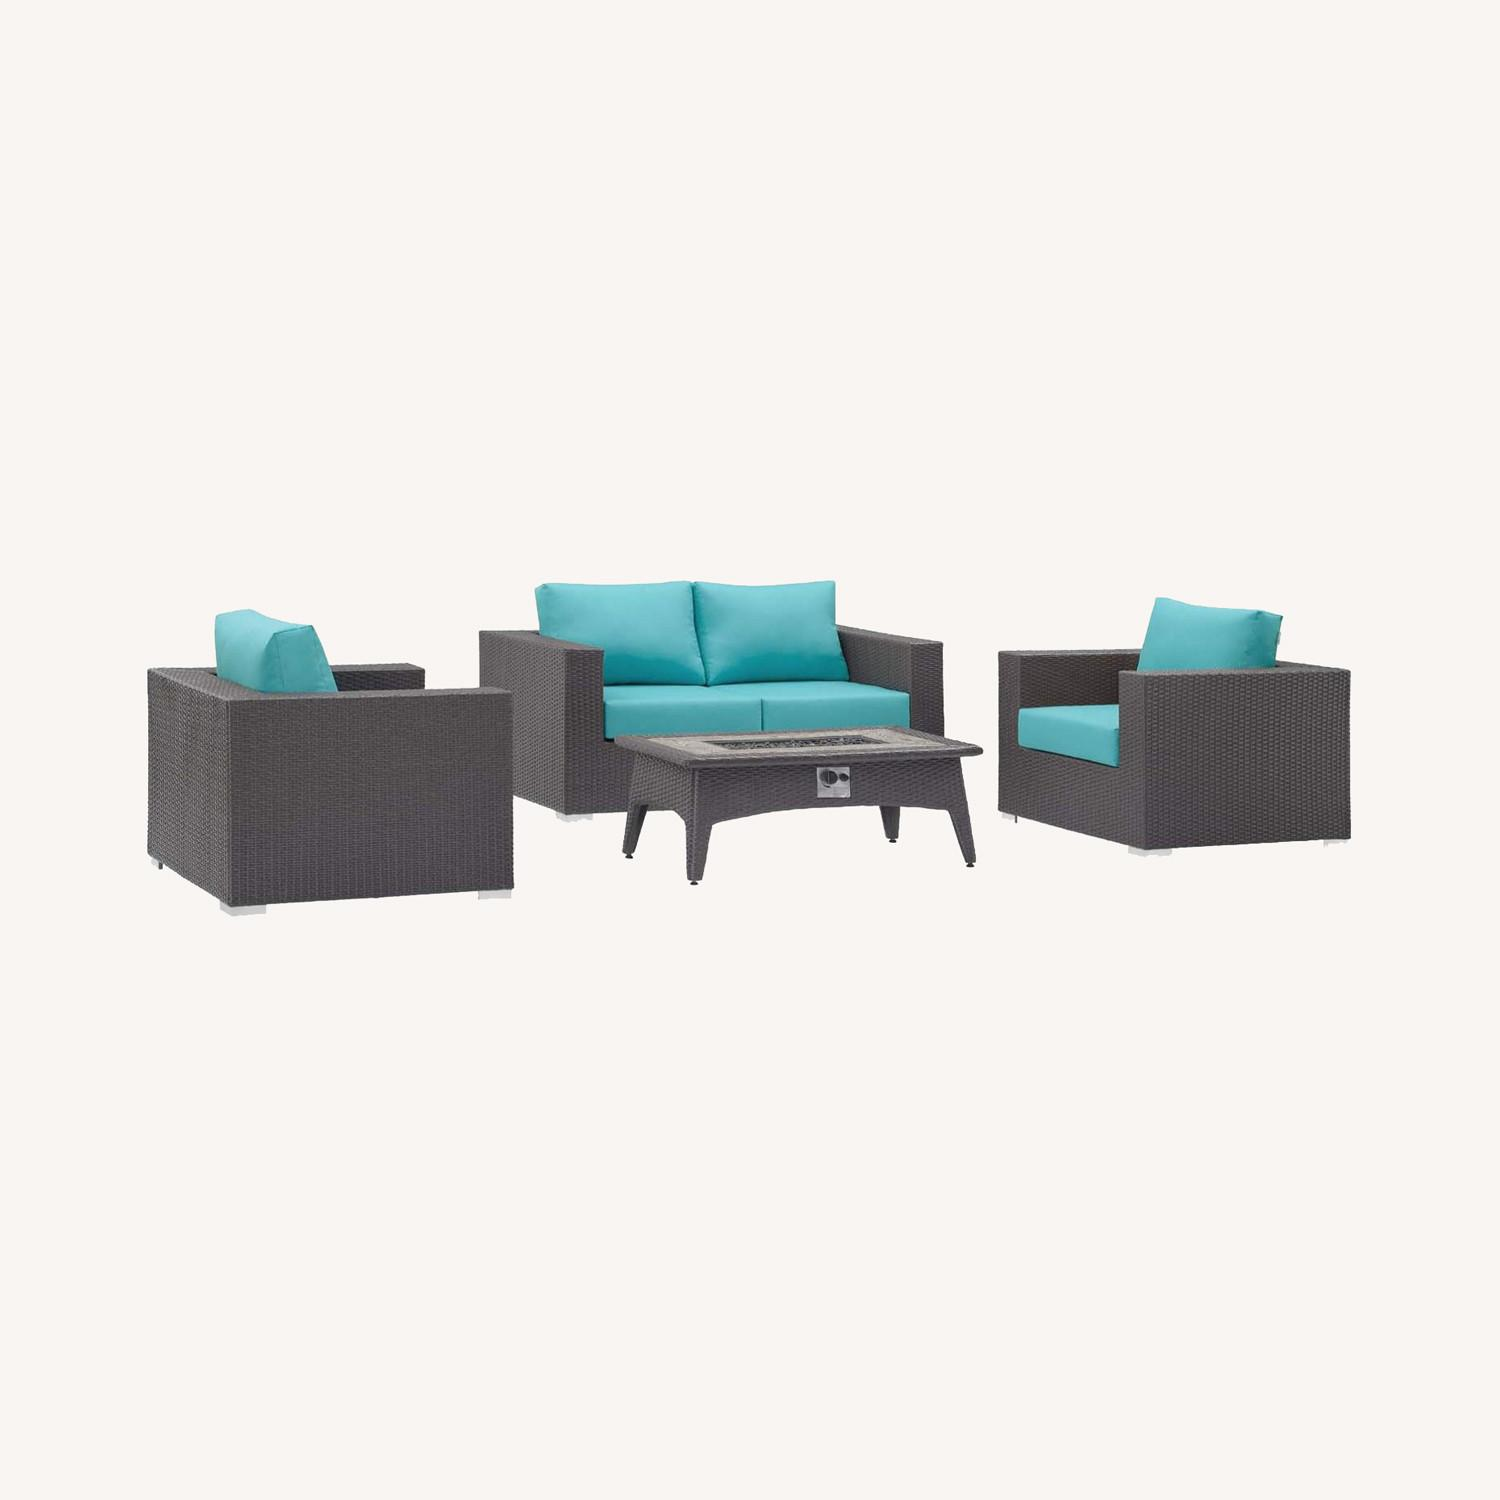 4-Piece Outdoor Sectional In Turquoise W/ Fire Pit - image-7